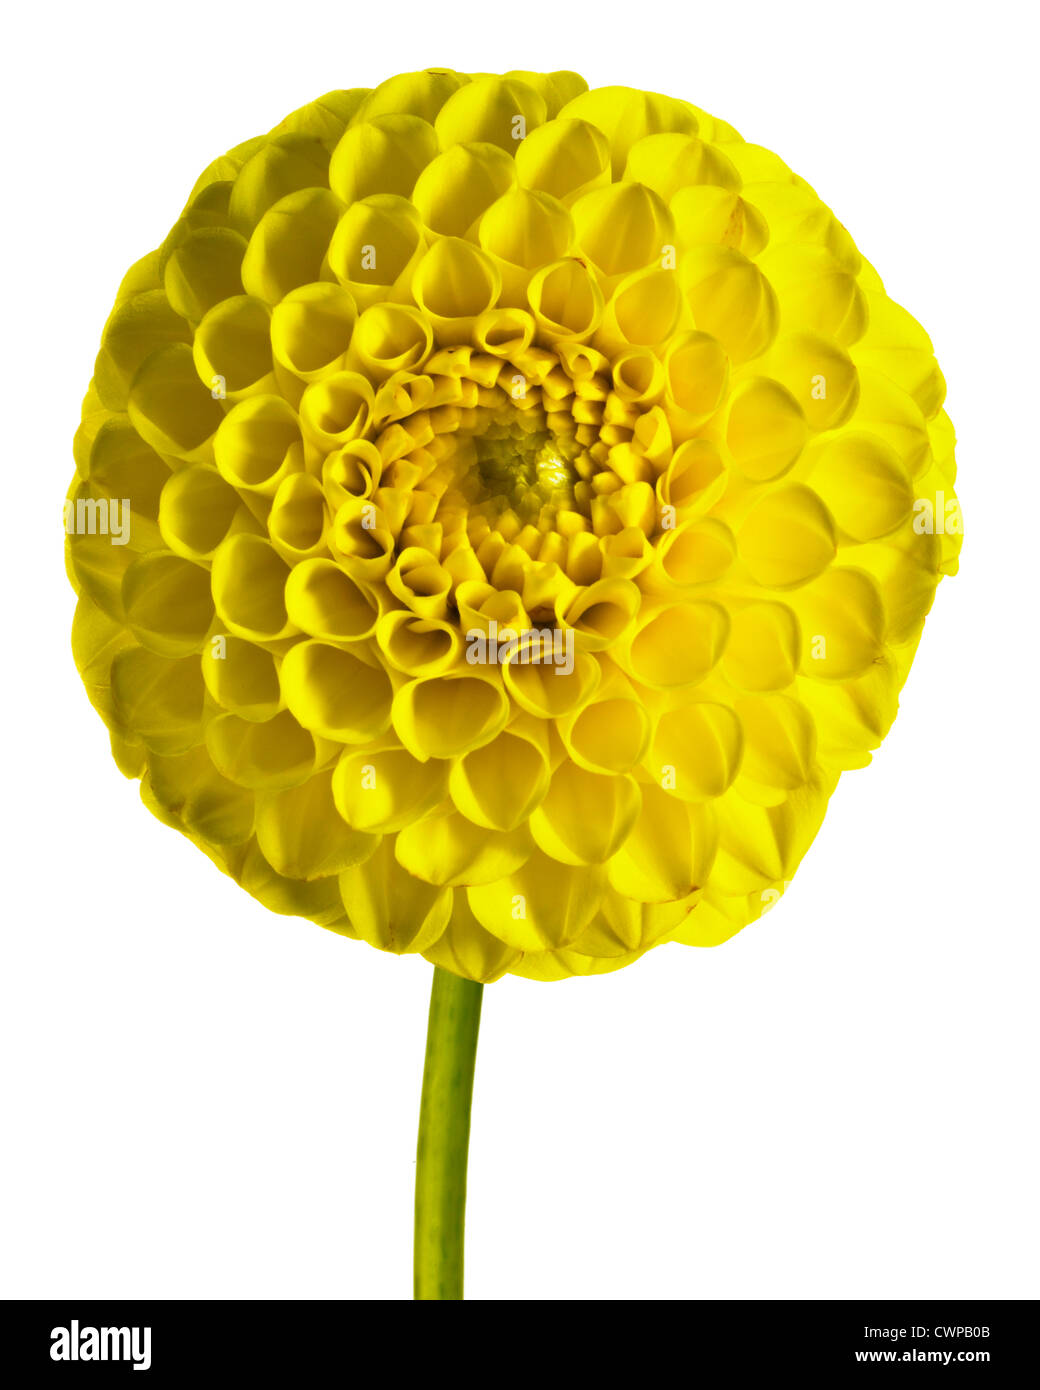 Ball shaped flowers cut out stock images pictures alamy cwpb0b mightylinksfo